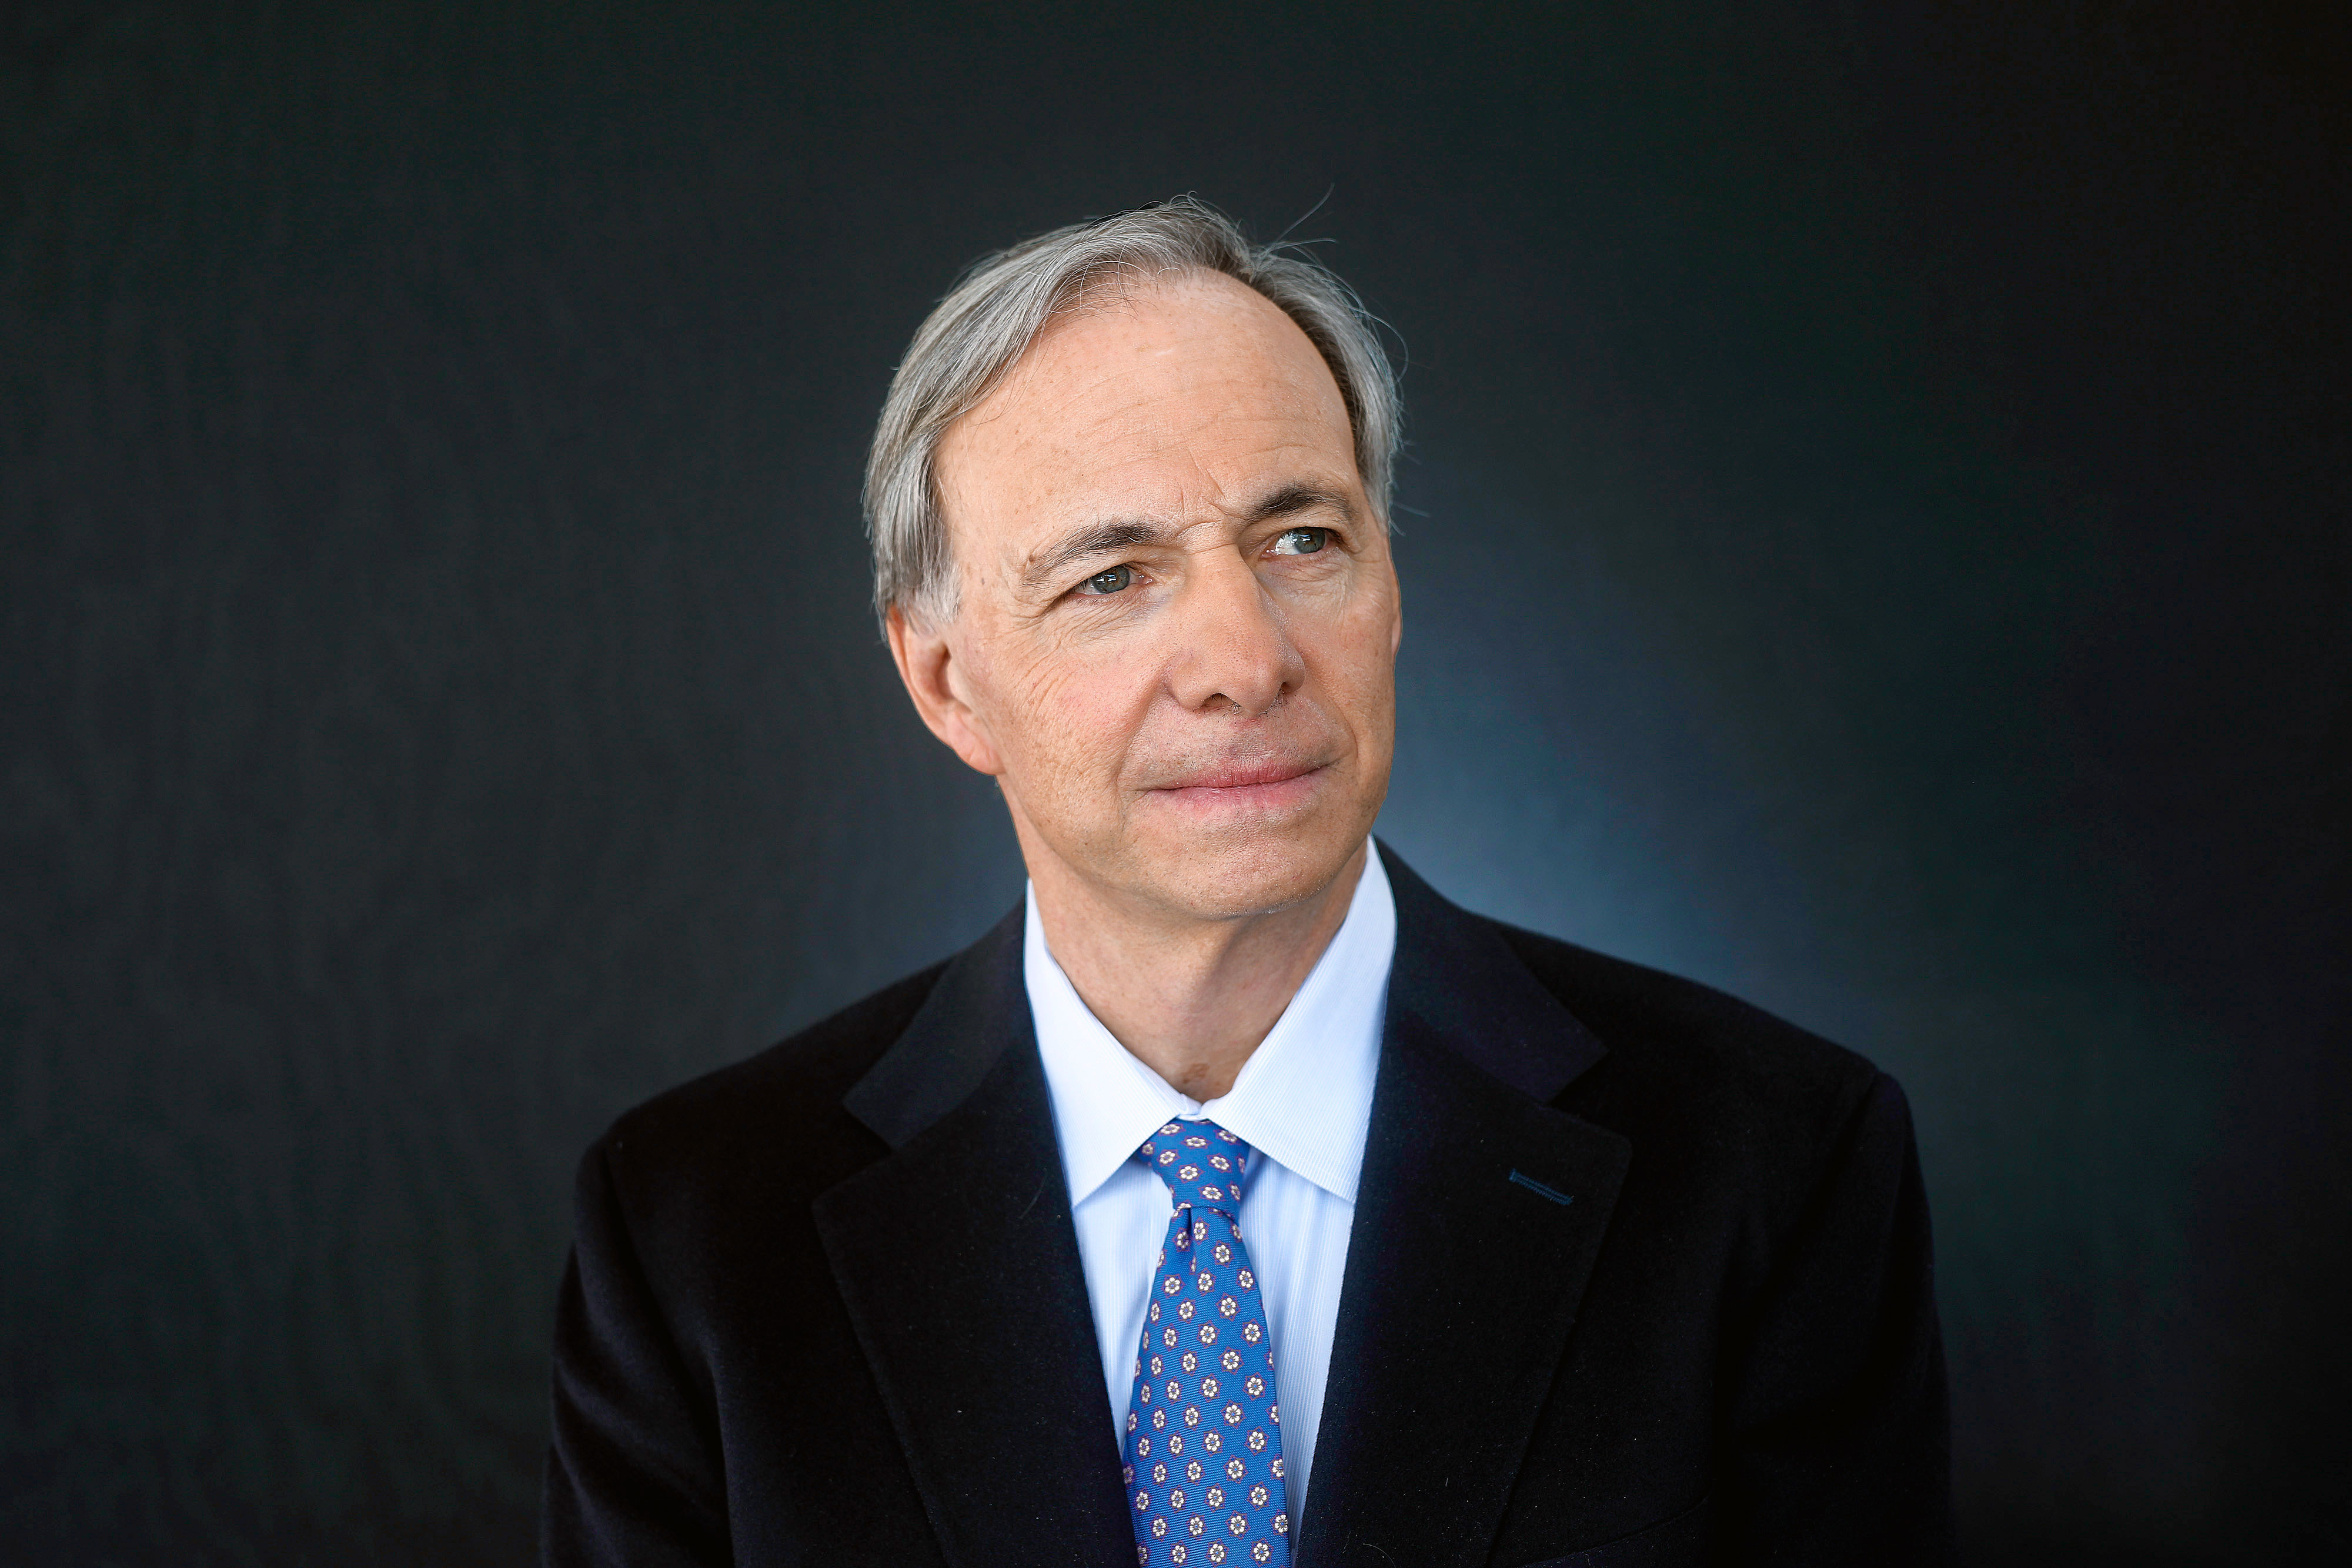 Ray Dalio Quotes Ray Dalio Quotes on Investing Ray Dalio Quotes on Investment Ray Dalio Quotes on Opinion Ray Dalio Quotes about Principles Ray Dalio Quotes about Worry Ray Dalio Quotes about Goals Ray Dalio Quotes about Growth Ray Dalio Quotes about Arguing Ray Dalio Quotes about Progress Ray Dalio Quotes about Quality Ray Dalio Quotes about Choices Ray Dalio Quotes about Decisions Ray Dalio Quotes about Desire Ray Dalio Quotes about Eyes Ray Dalio Quotes about Fighting Ray Dalio Quotes about Values Ray Dalio Quotes about Weakness Ray Dalio Quotes about Being Successful Ray Dalio Quotes about Running Ray Dalio Quotes about School Ray Dalio Quotes about Harmony Ray Dalio Quotes about Inflation Ray Dalio Quotes about Life Ray Dalio Quotes about Meditation Ray Dalio Quotes about Meritocracy Ray Dalio Quotes about Mistakes Ray Dalio Quotes about Opportunity Ray Dalio Quotes about Pain Ray Dalio Quotes about Past Ray Dalio Quotes about Giving Ray Dalio Quotes about Winning Ray Dalio Quotes about Reality Ray Dalio Quotes about Transparency Ray Dalio Quotes about Understanding 260+【Ray Dalio Quotes】- Owner of Bridgewater Associates This Time We Come Up With The Latest Collection of Ray Dalio Quotes. These Amazing Investment And Principles Yet Opportunity Quotation Are About Reality, Transparency, Winning, Giving, Past, Pain, Mistakes, Meditation, Meritocracy, School, Inflation, Being Successful, Running And so on.